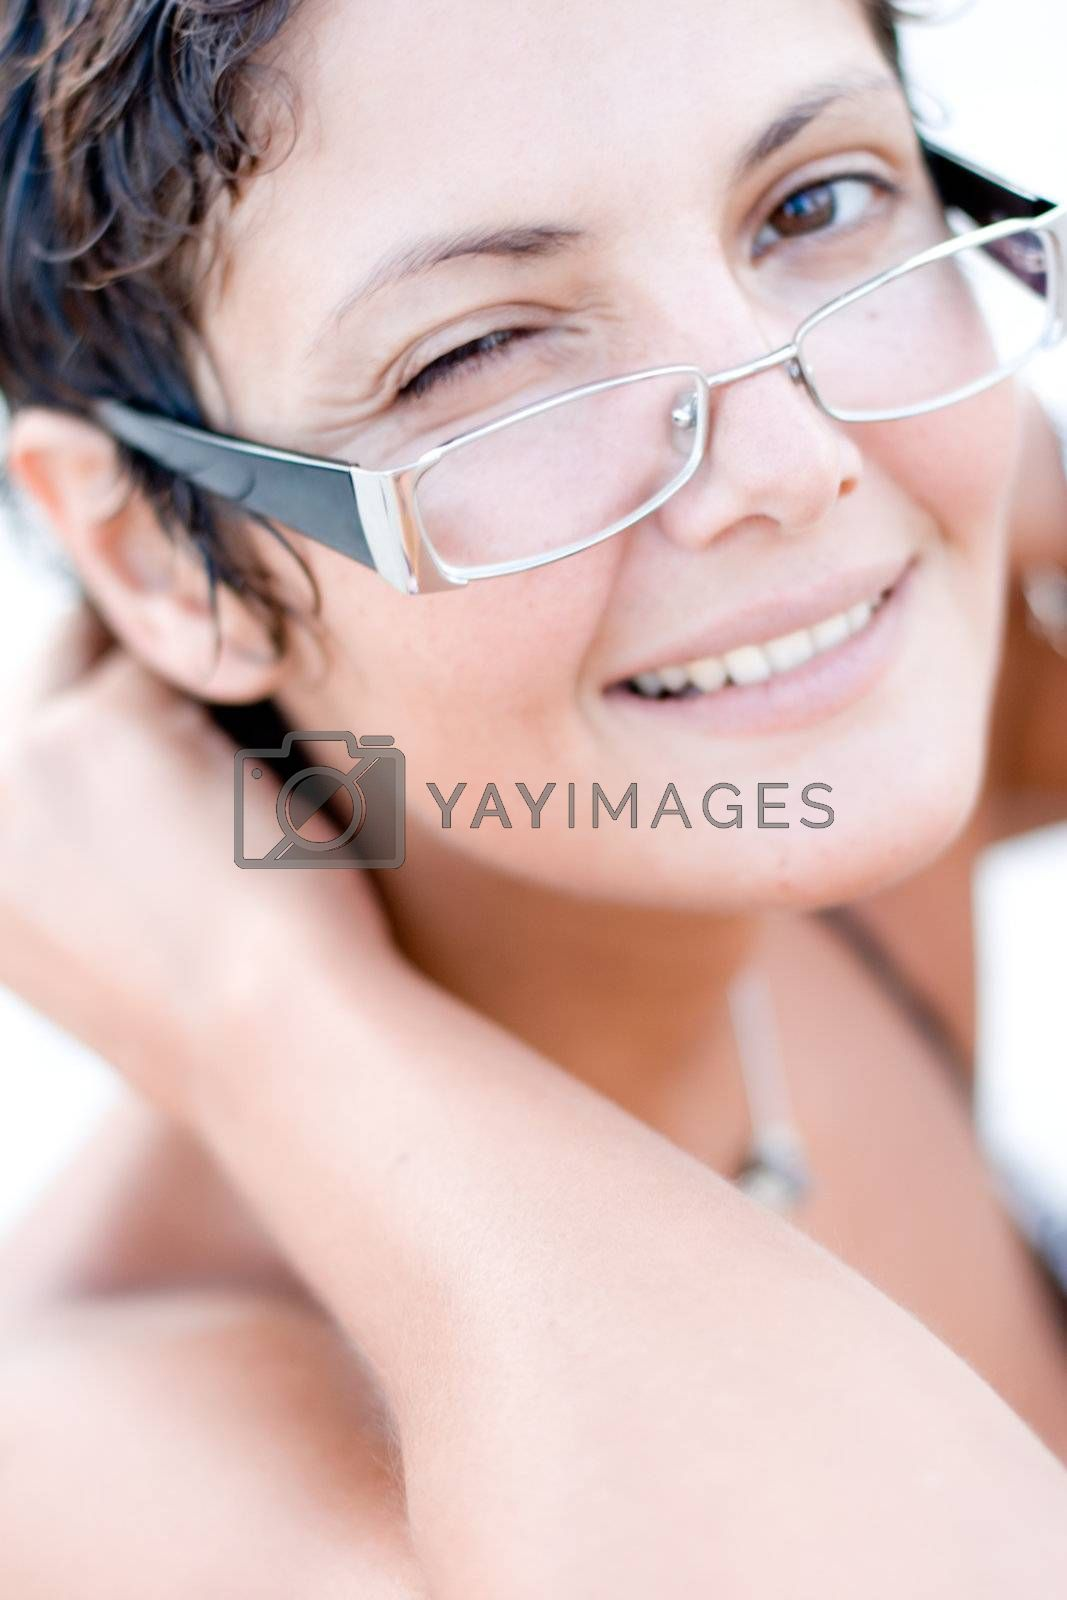 Royalty free image of attractive brunet woman by marylooo